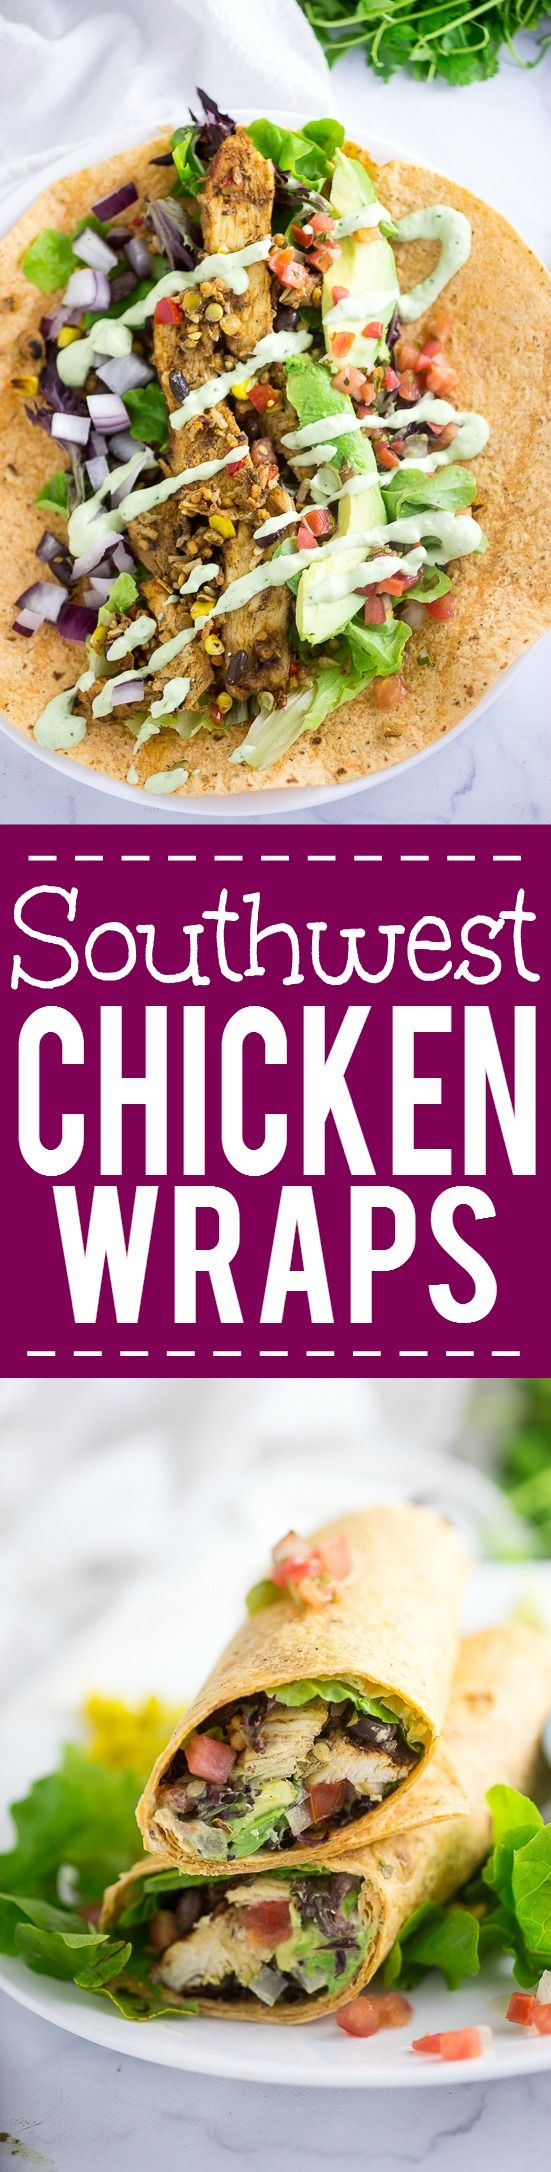 Southwest Chicken Wraps Recipe -Healthy quick and easySouthwest Chicken Wraps with a creamy cilantro lime sauce are a yummy way to eat fresh. Make them for the whole family in under 30 minutes! Super easy and health (or lunch!) recipe!